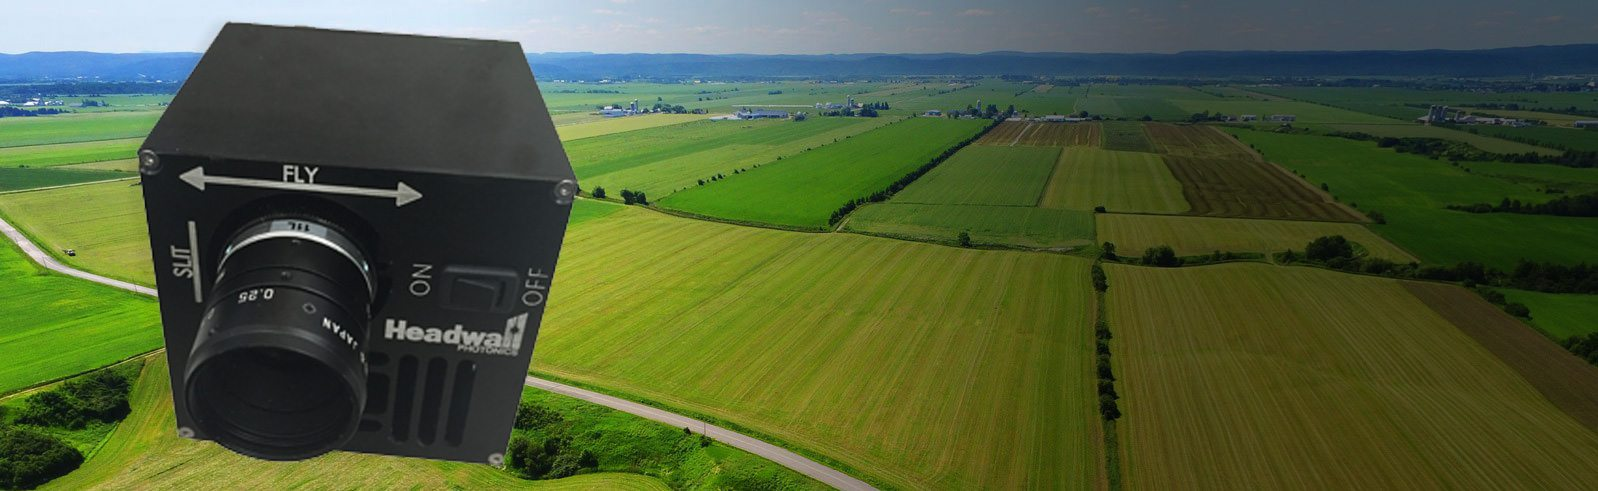 Precision Ag history shows that development of multispectral capability has been a game changer